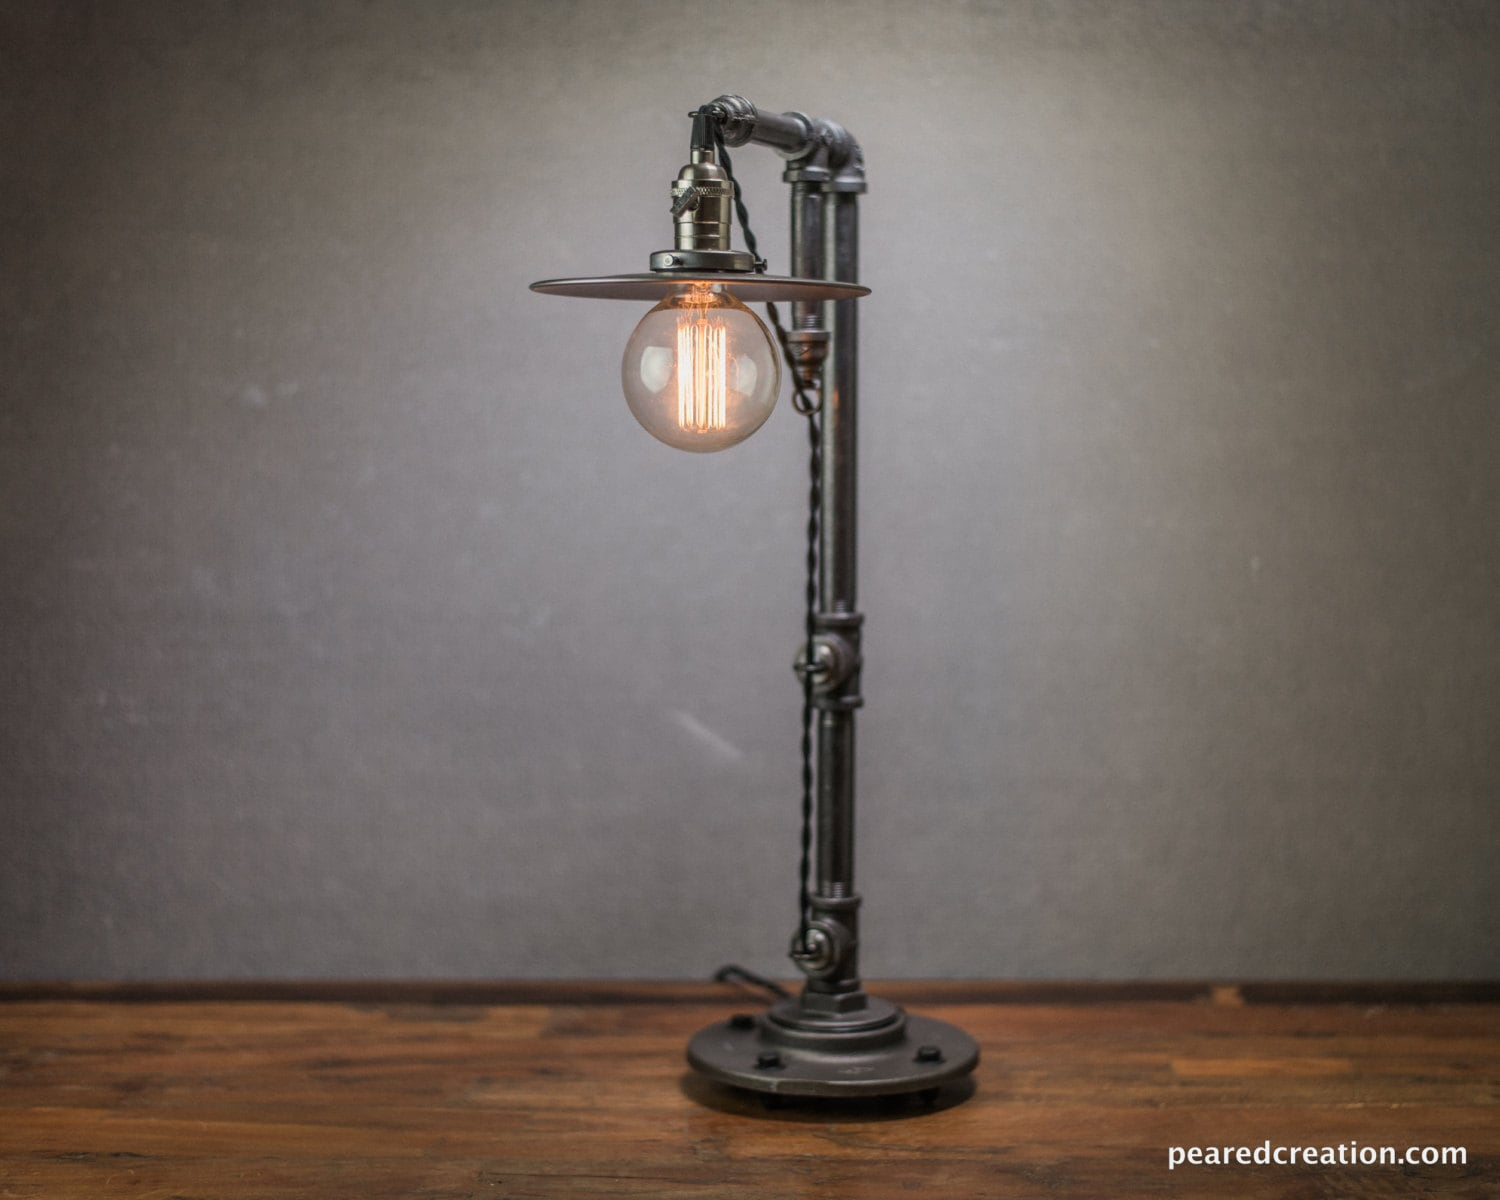 Pulley Light Table Lamp Vintage Table Lamp Industrial